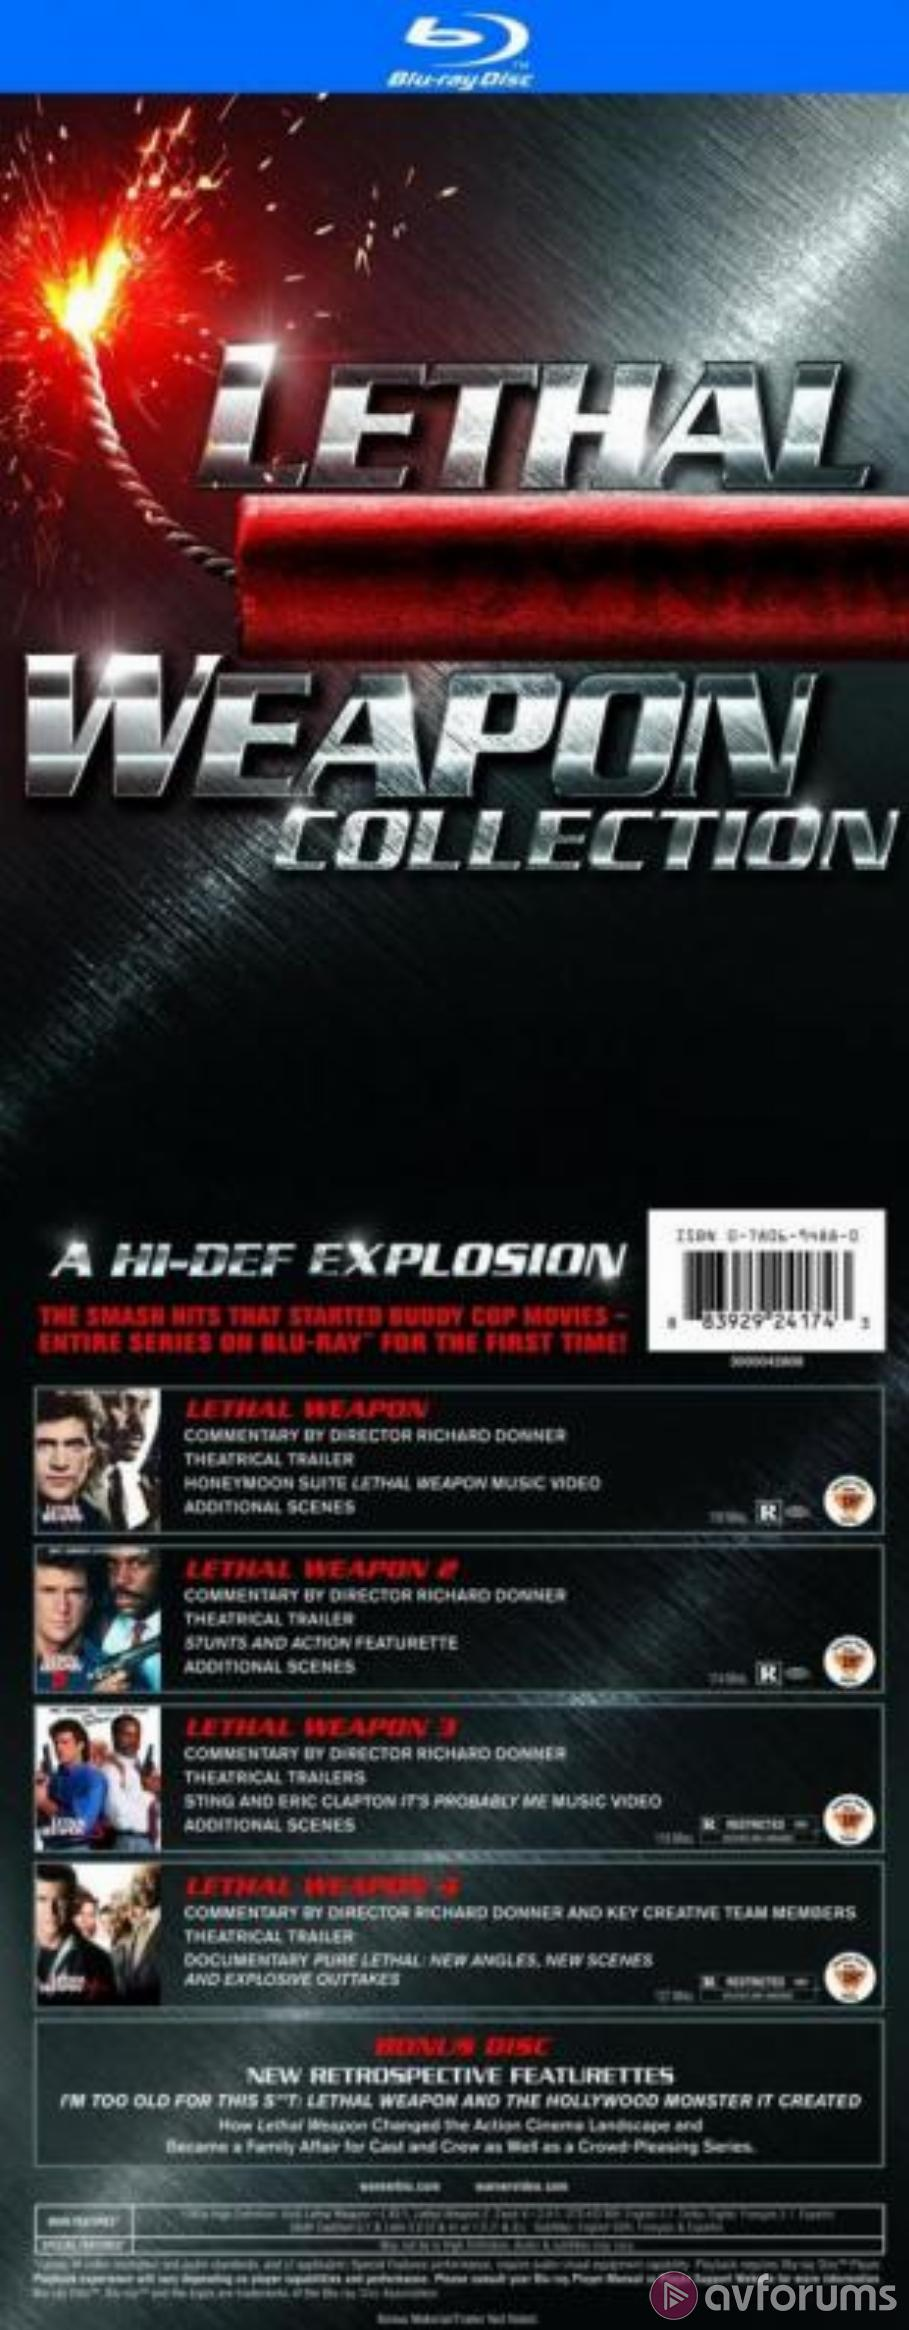 Lethal Weapon 4 (Lethal Weapon Collection) Blu-ray Review